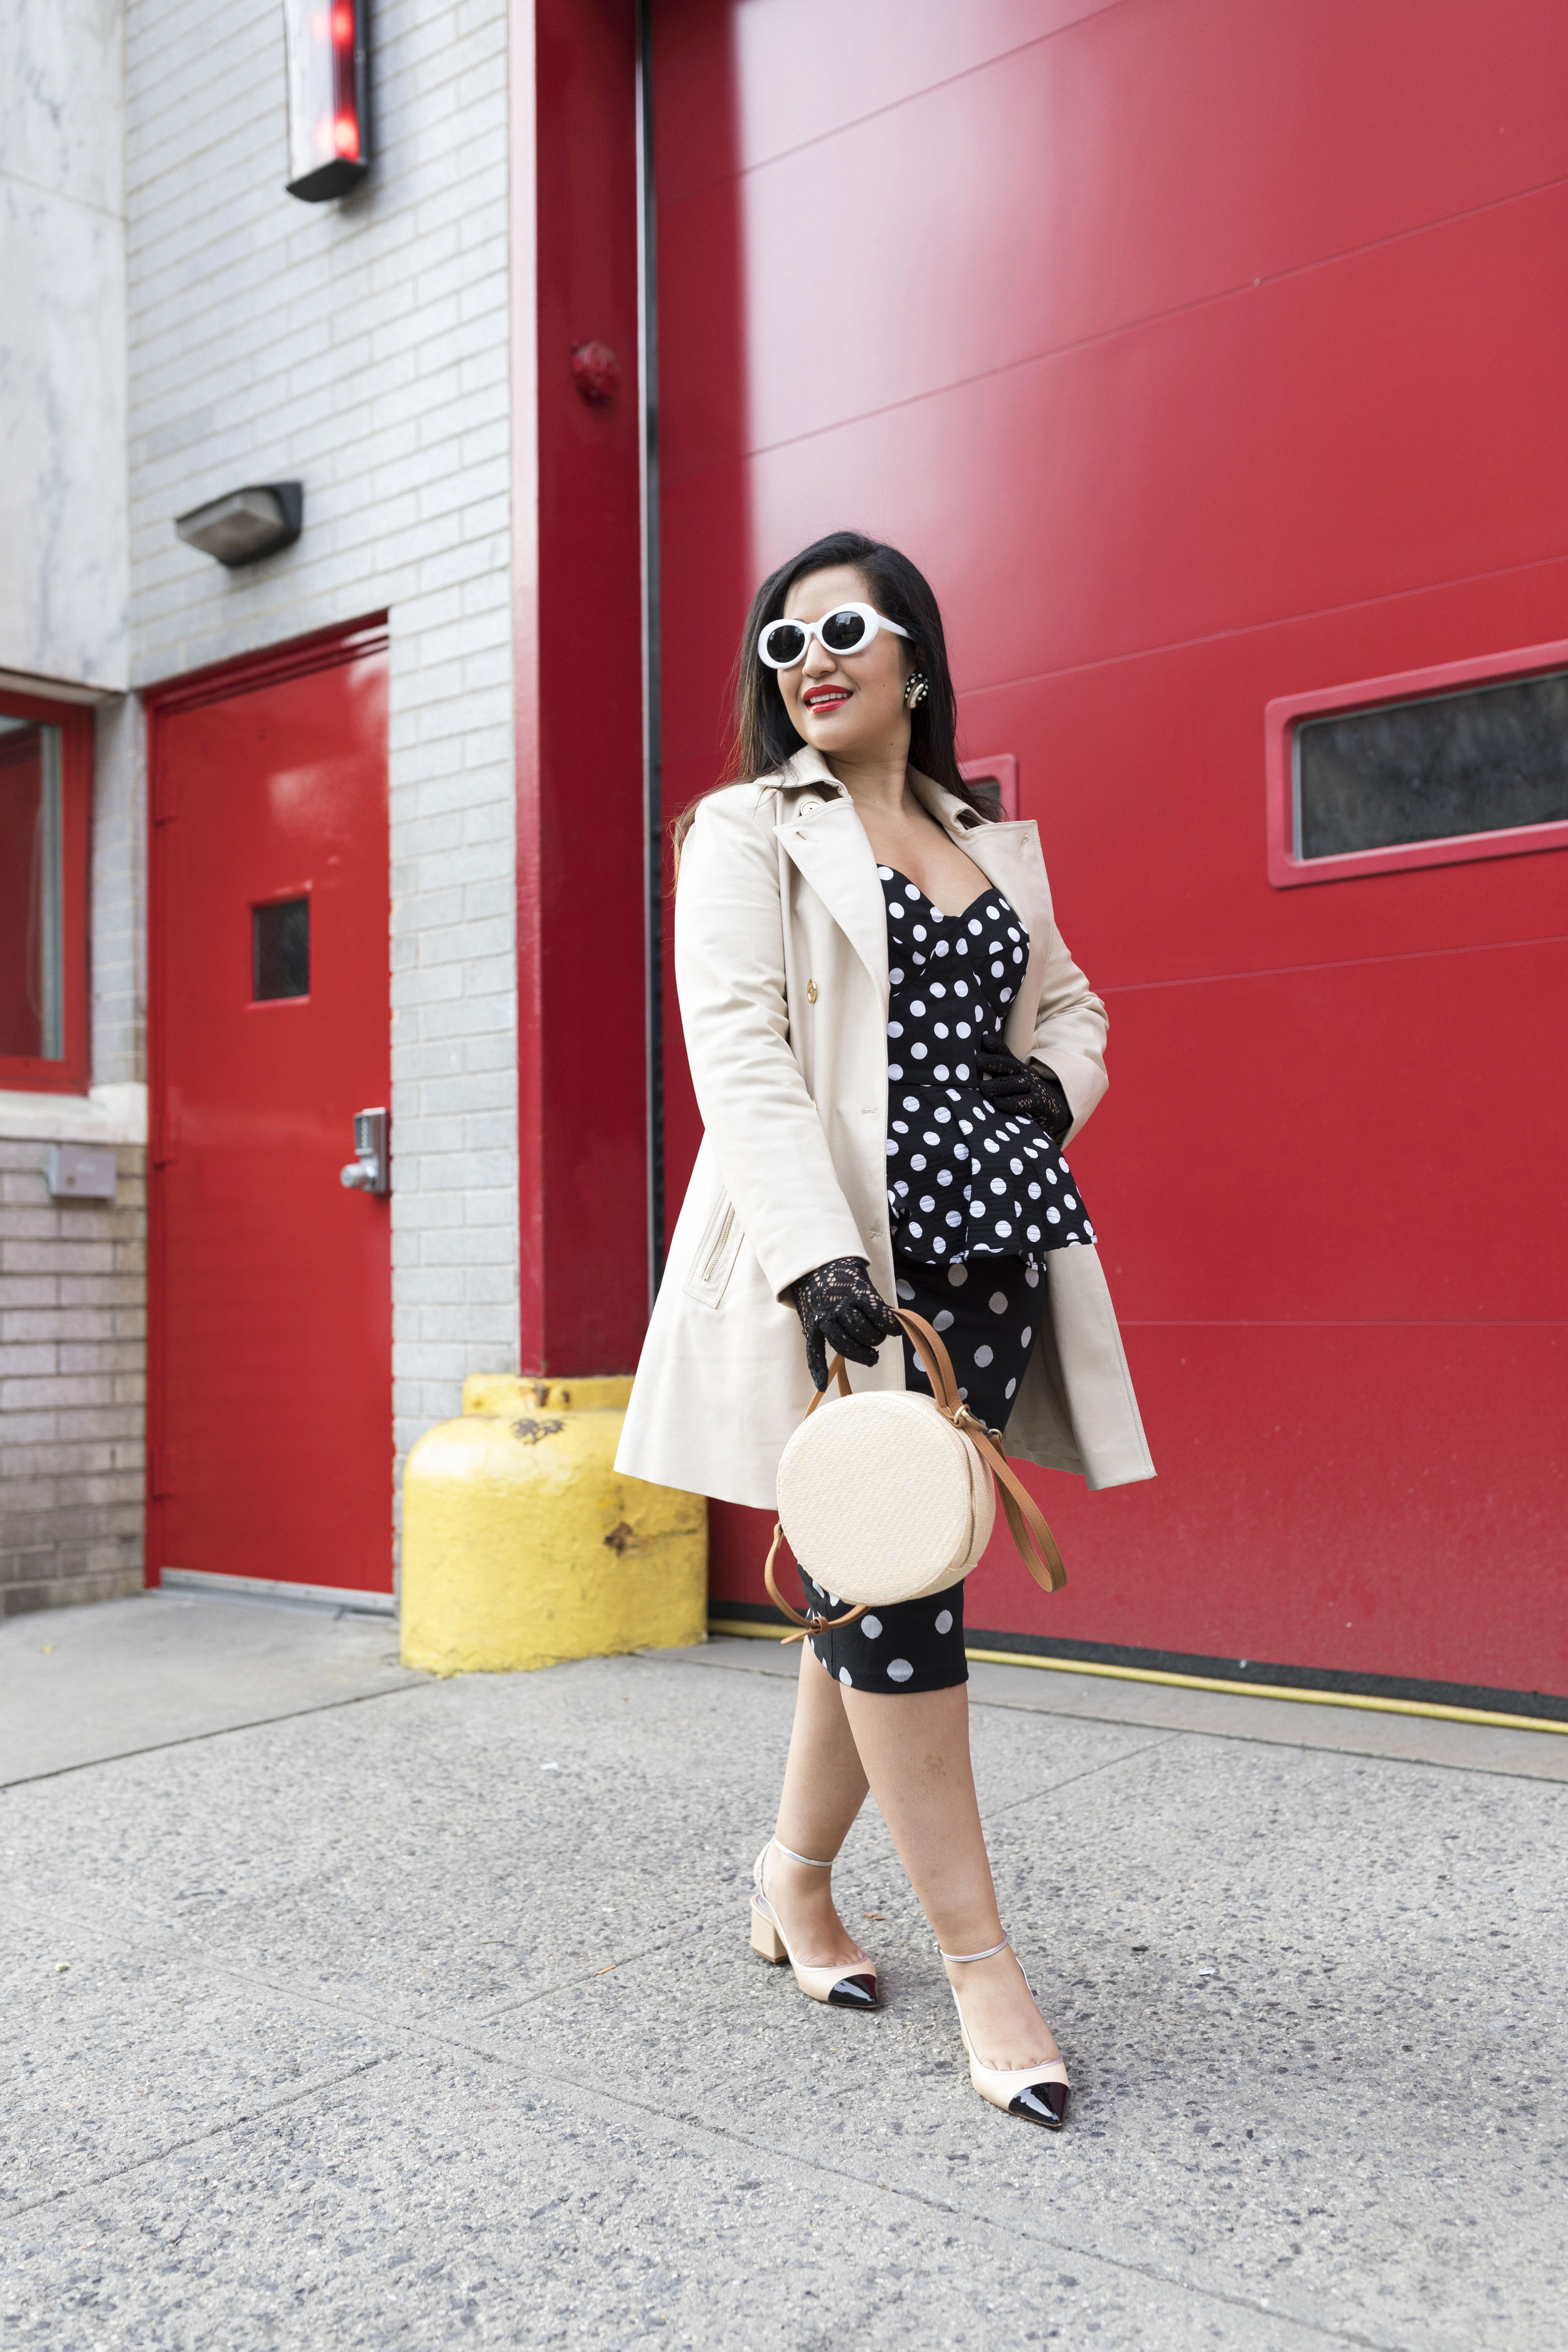 Krity S x Polka Dots x Spring Outfit10.jpg